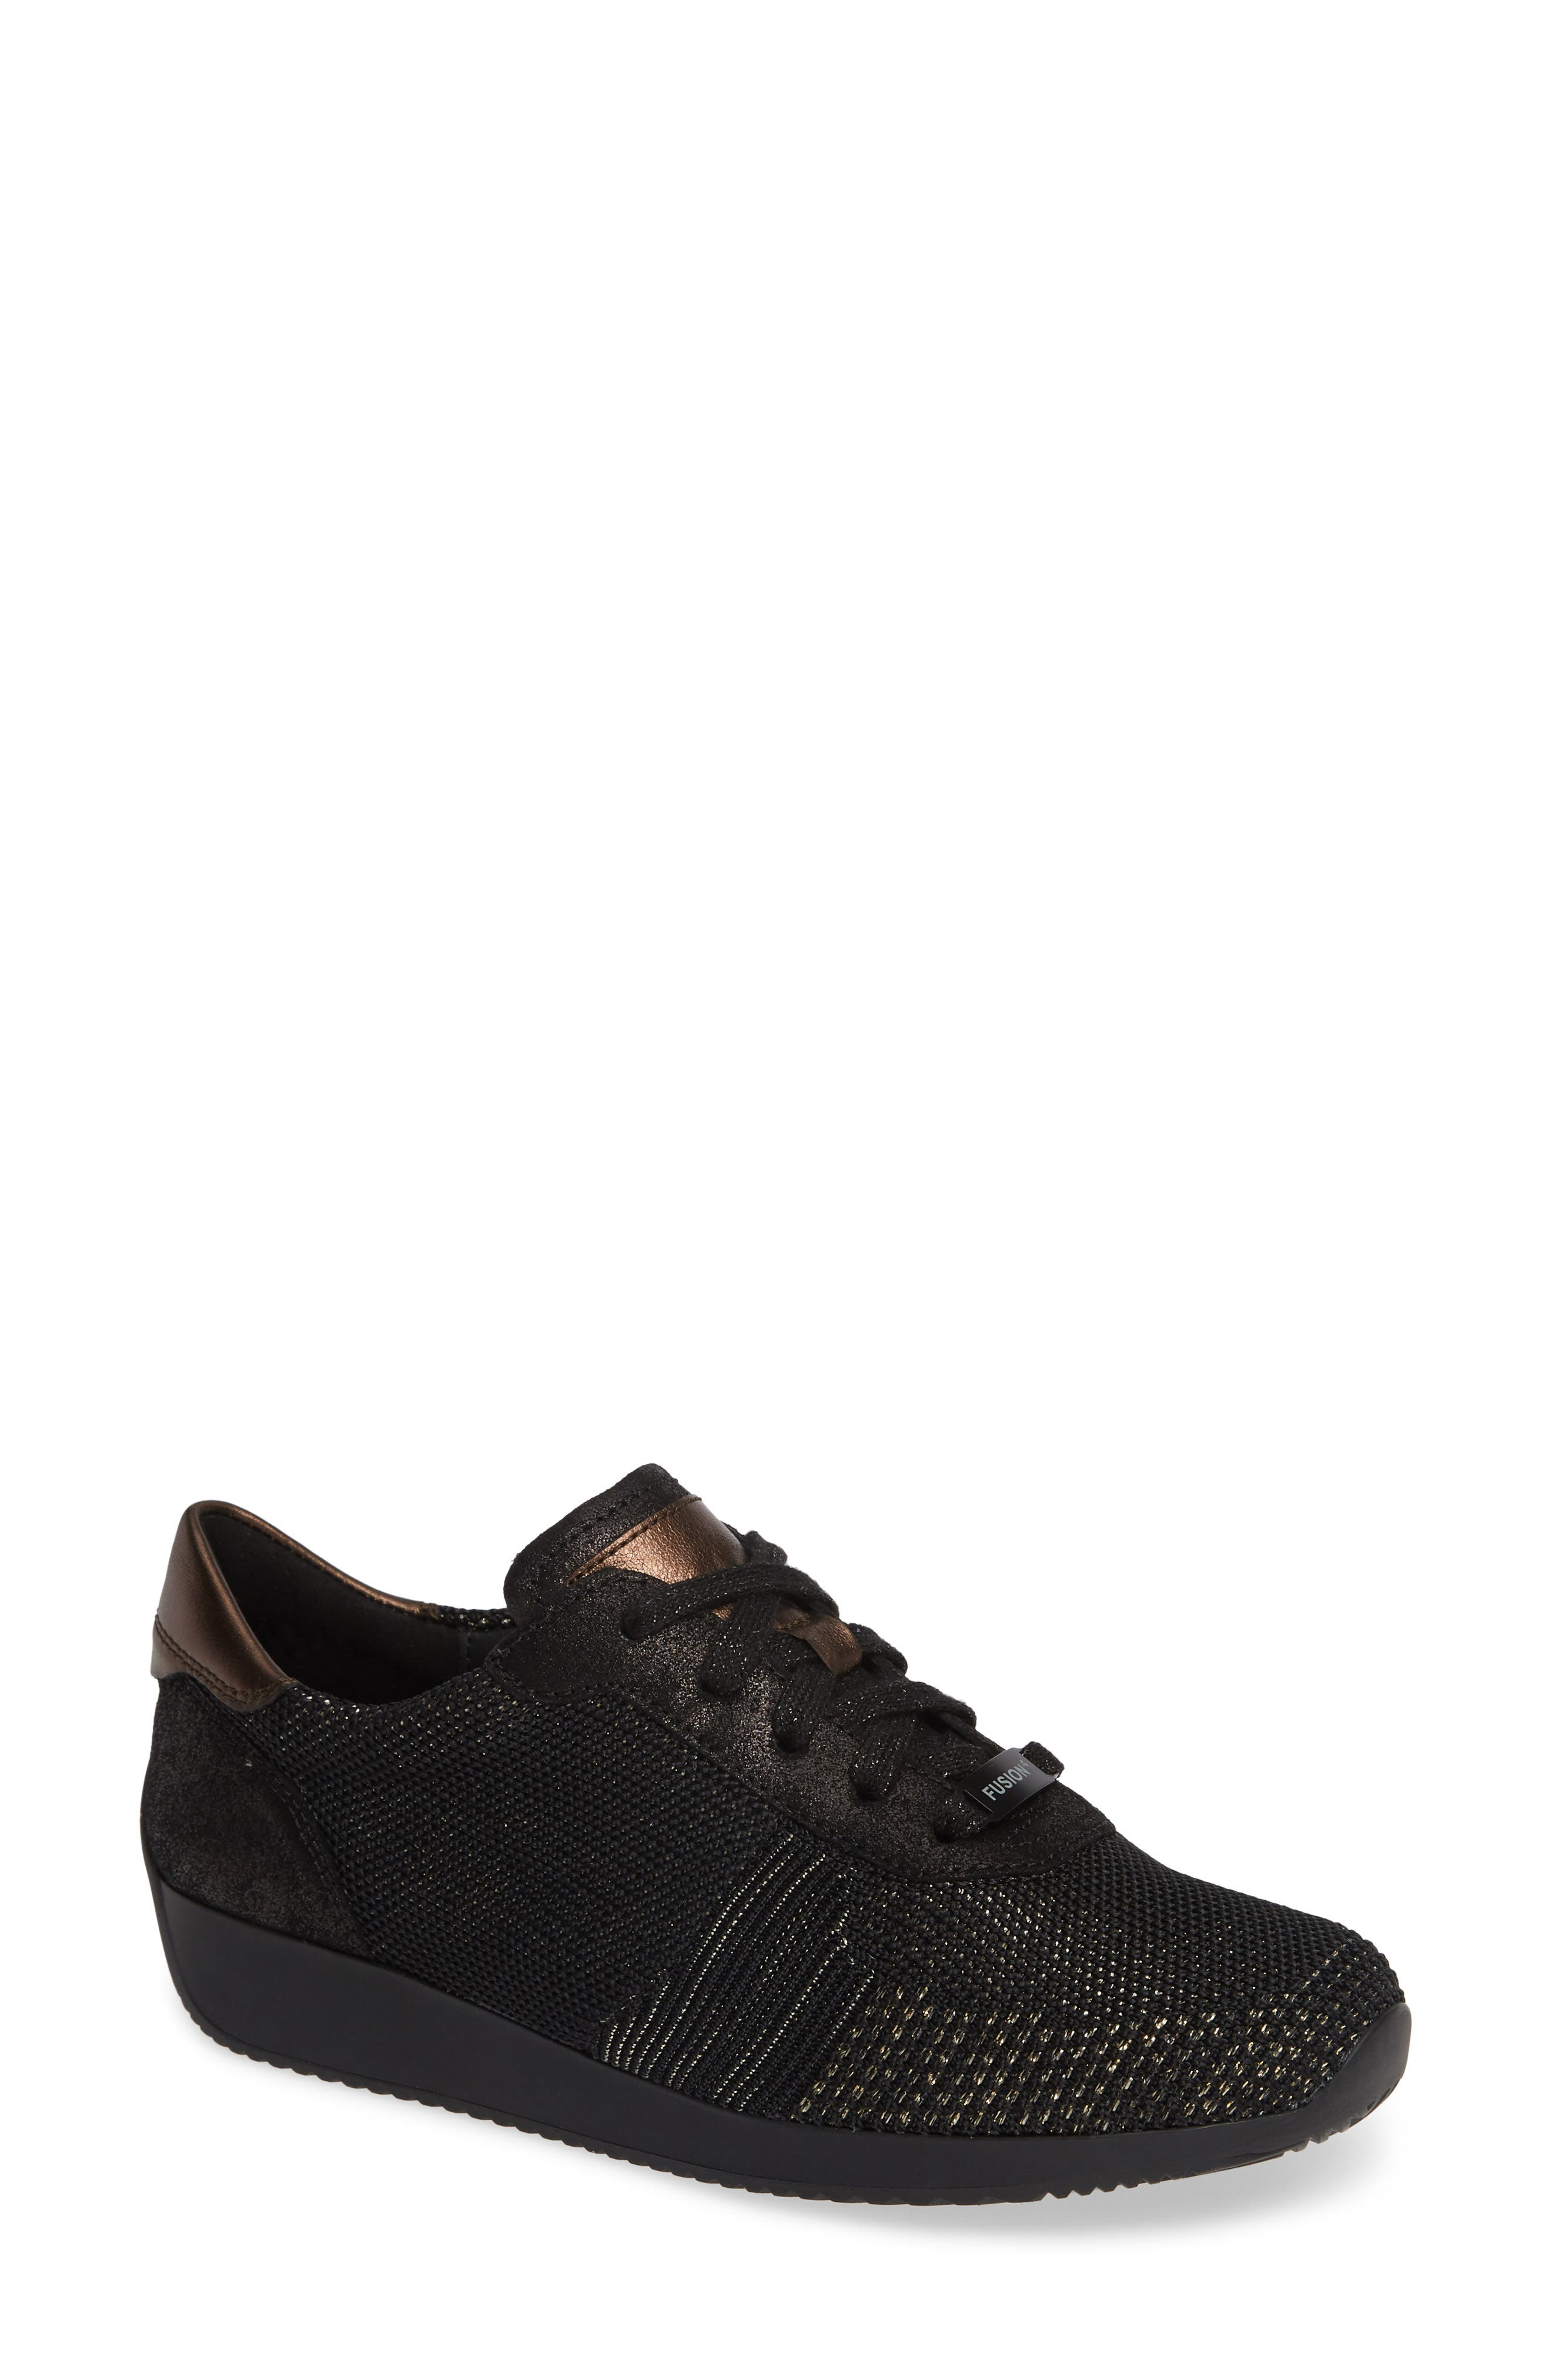 Lilly Sneaker,                         Main,                         color, BLACK/ BLACK LEATHER